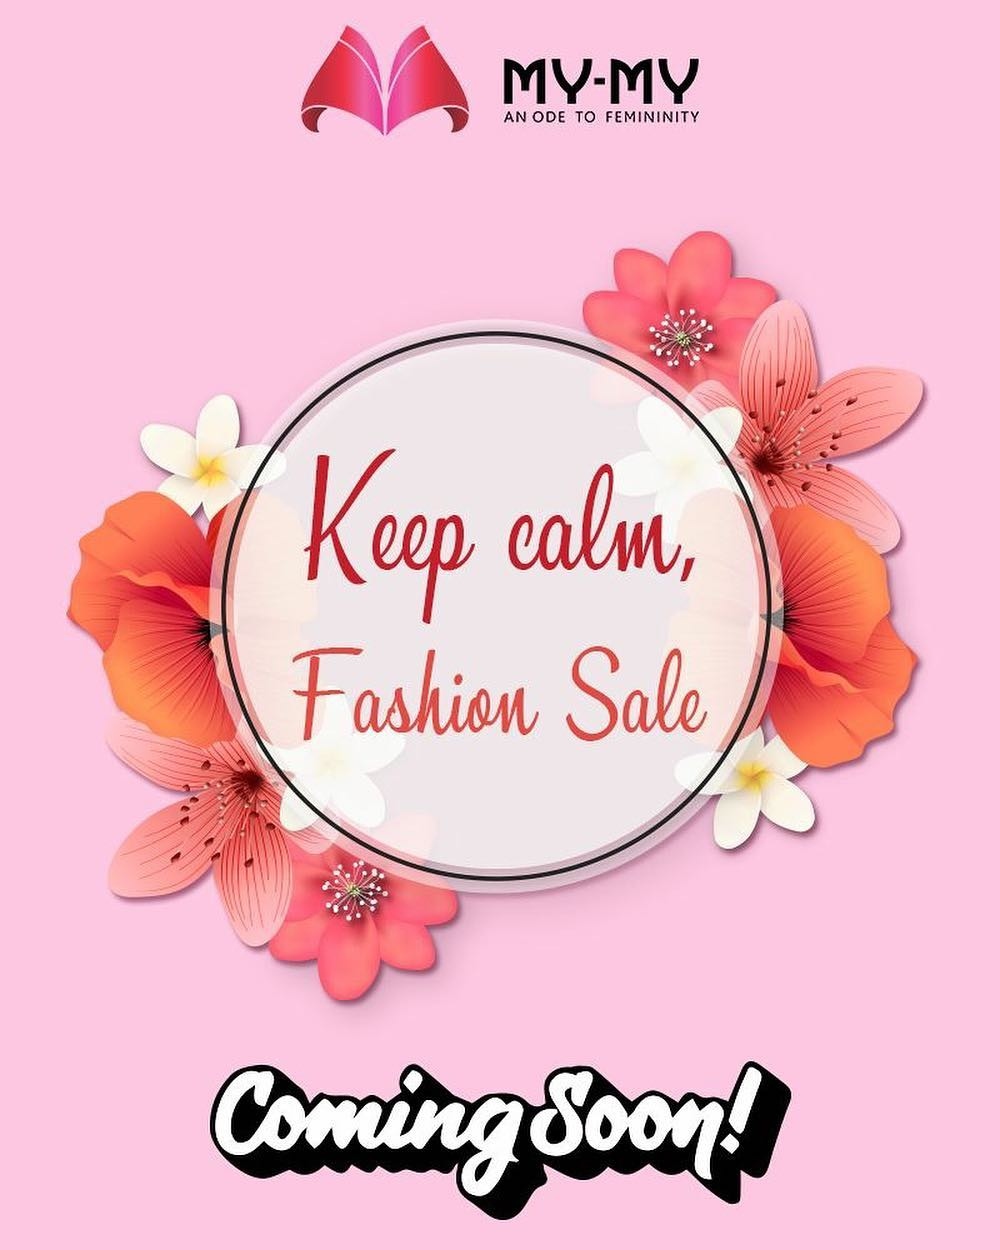 Keep calm #FashionSale coming soon!  #MyMy #MyMyAhmedabad #Fashion #Ahmedabad #FemaleFashion